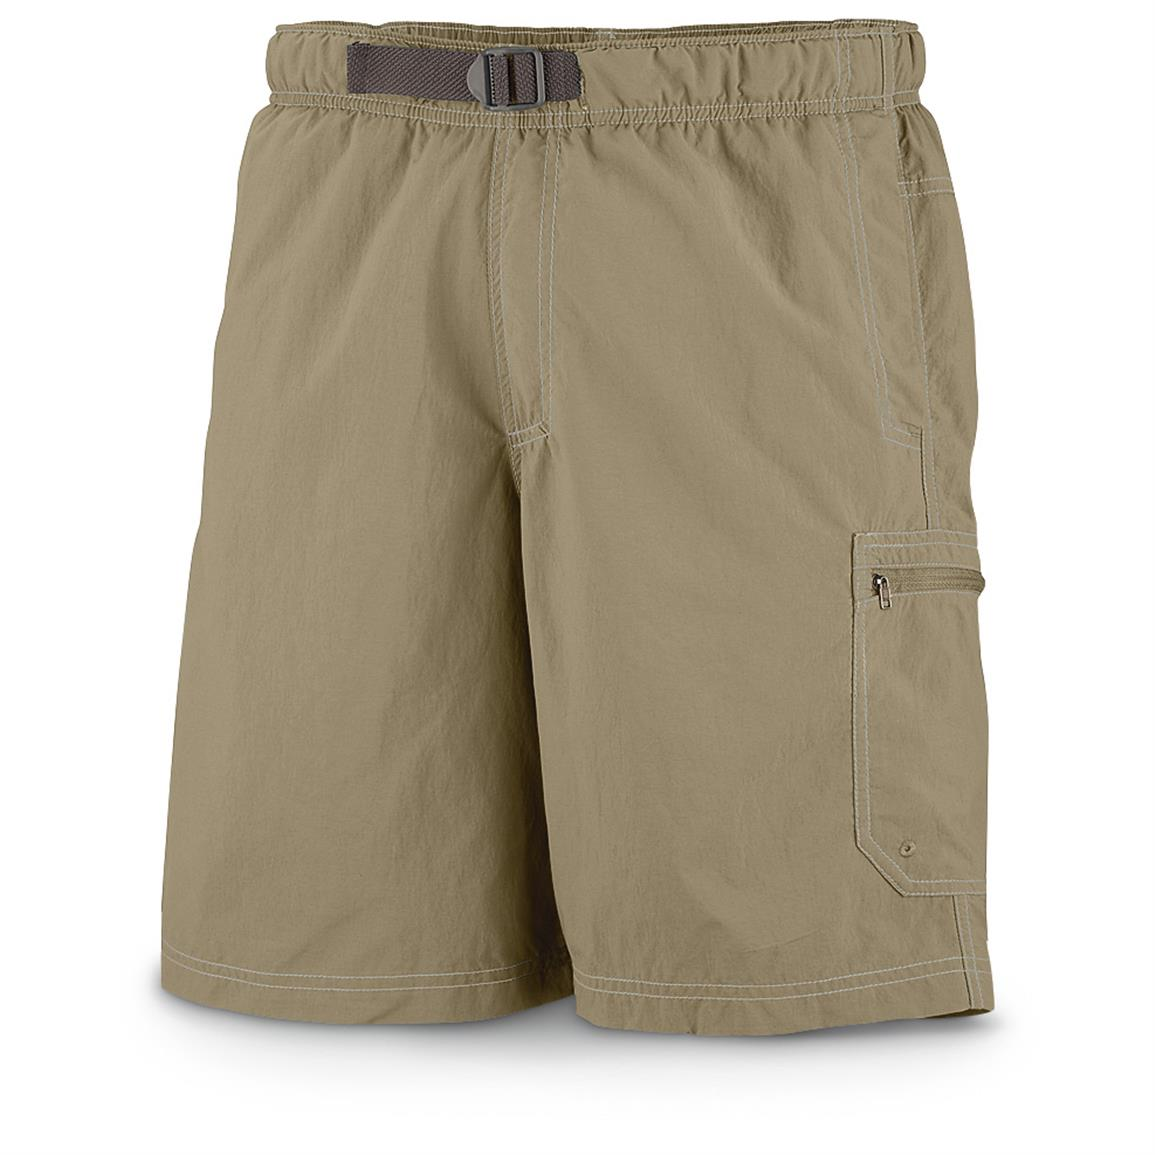 Columbia Men's Palmerston Peak Water Shorts, Twill • Front